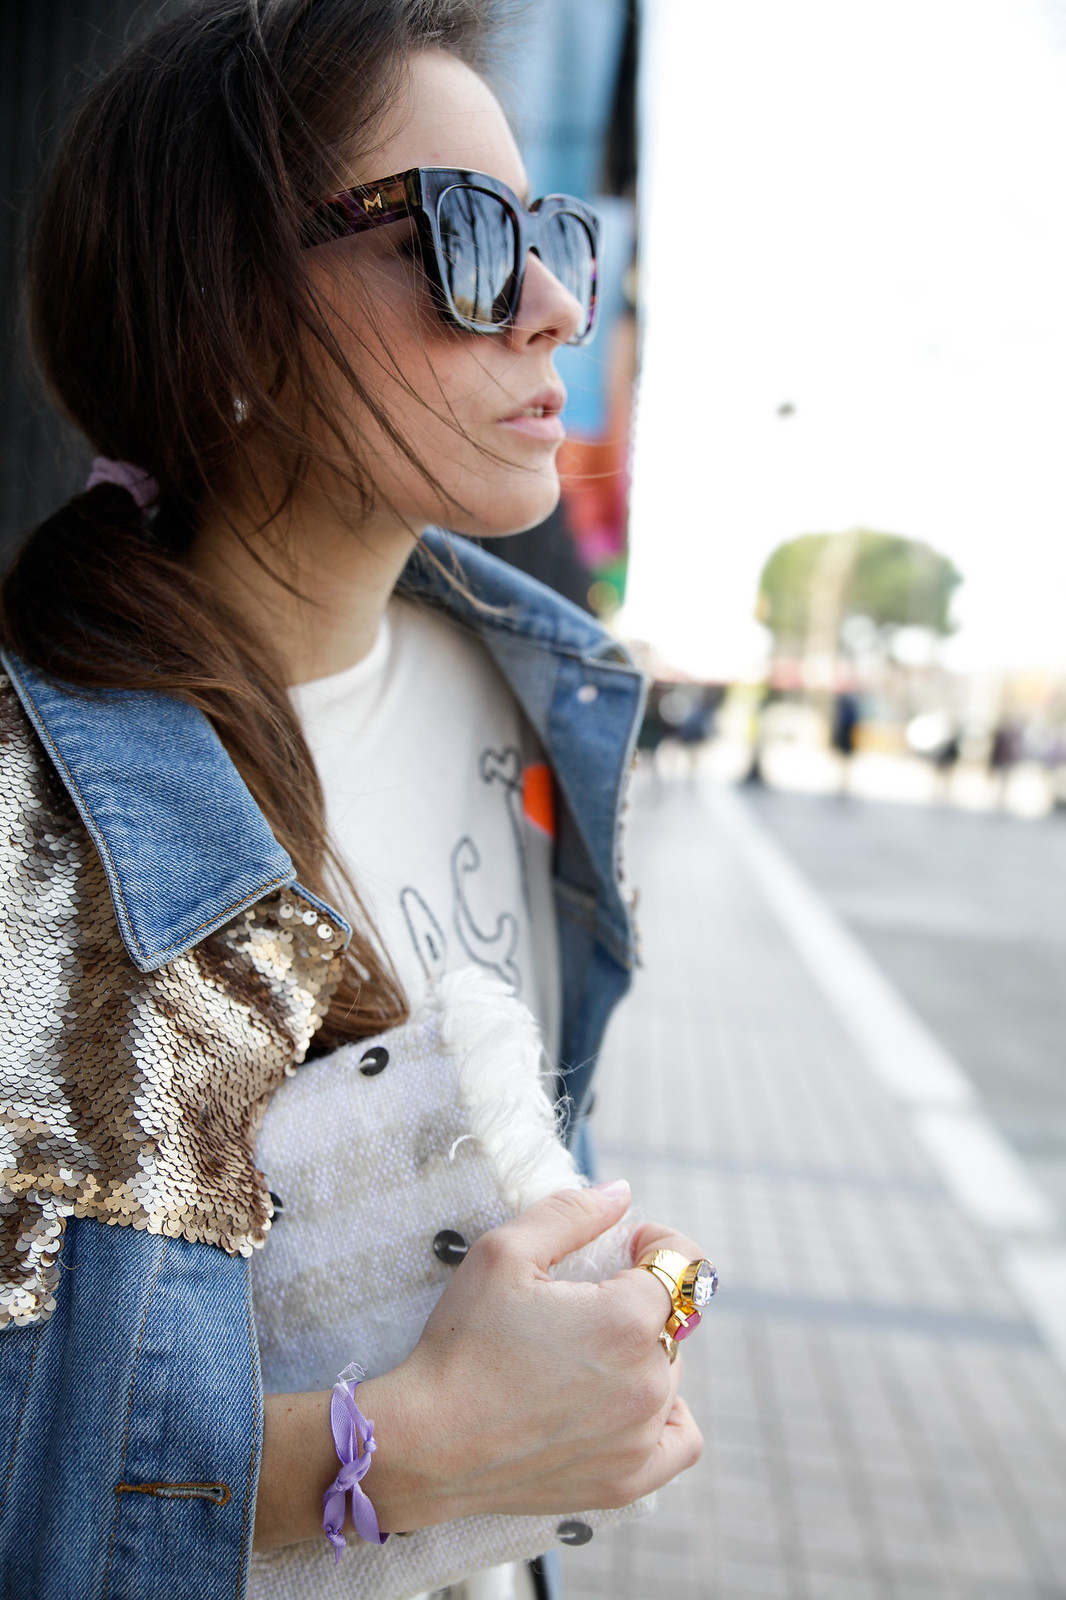 TREND_ ALERT_EMBROIDERY_AND_PATCHES_SEQUINS_DAY SUNGLASSES INFLUENCER SPAIN BARCELONA THEGUETSGIRL